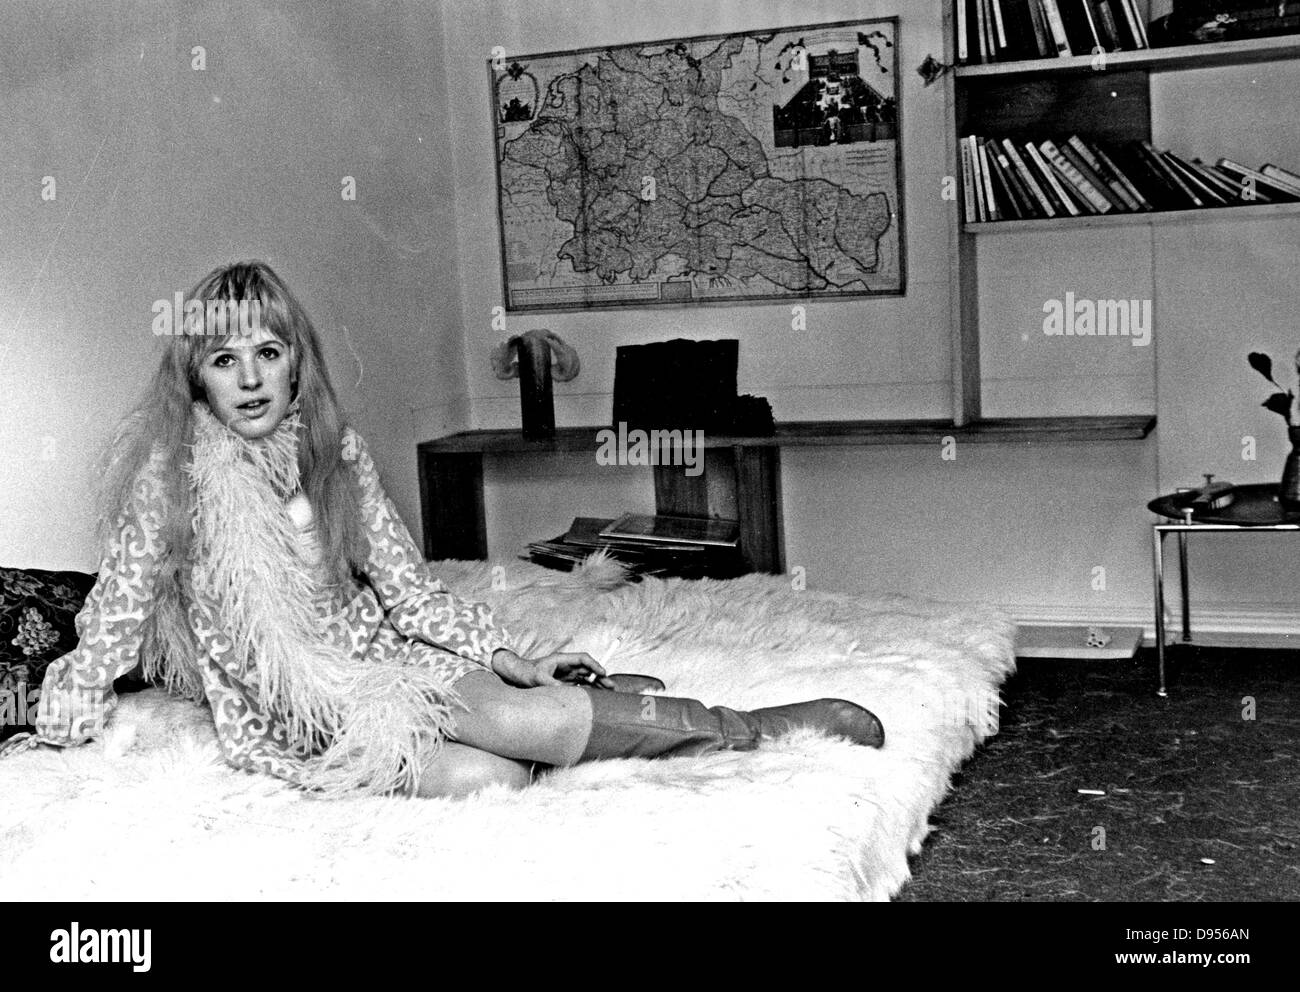 Pop singer 1960s stock photos pop singer 1960s stock images page marianne faithfull uk pop singer and film actress at her apartment in lennox gardenslondon thecheapjerseys Gallery